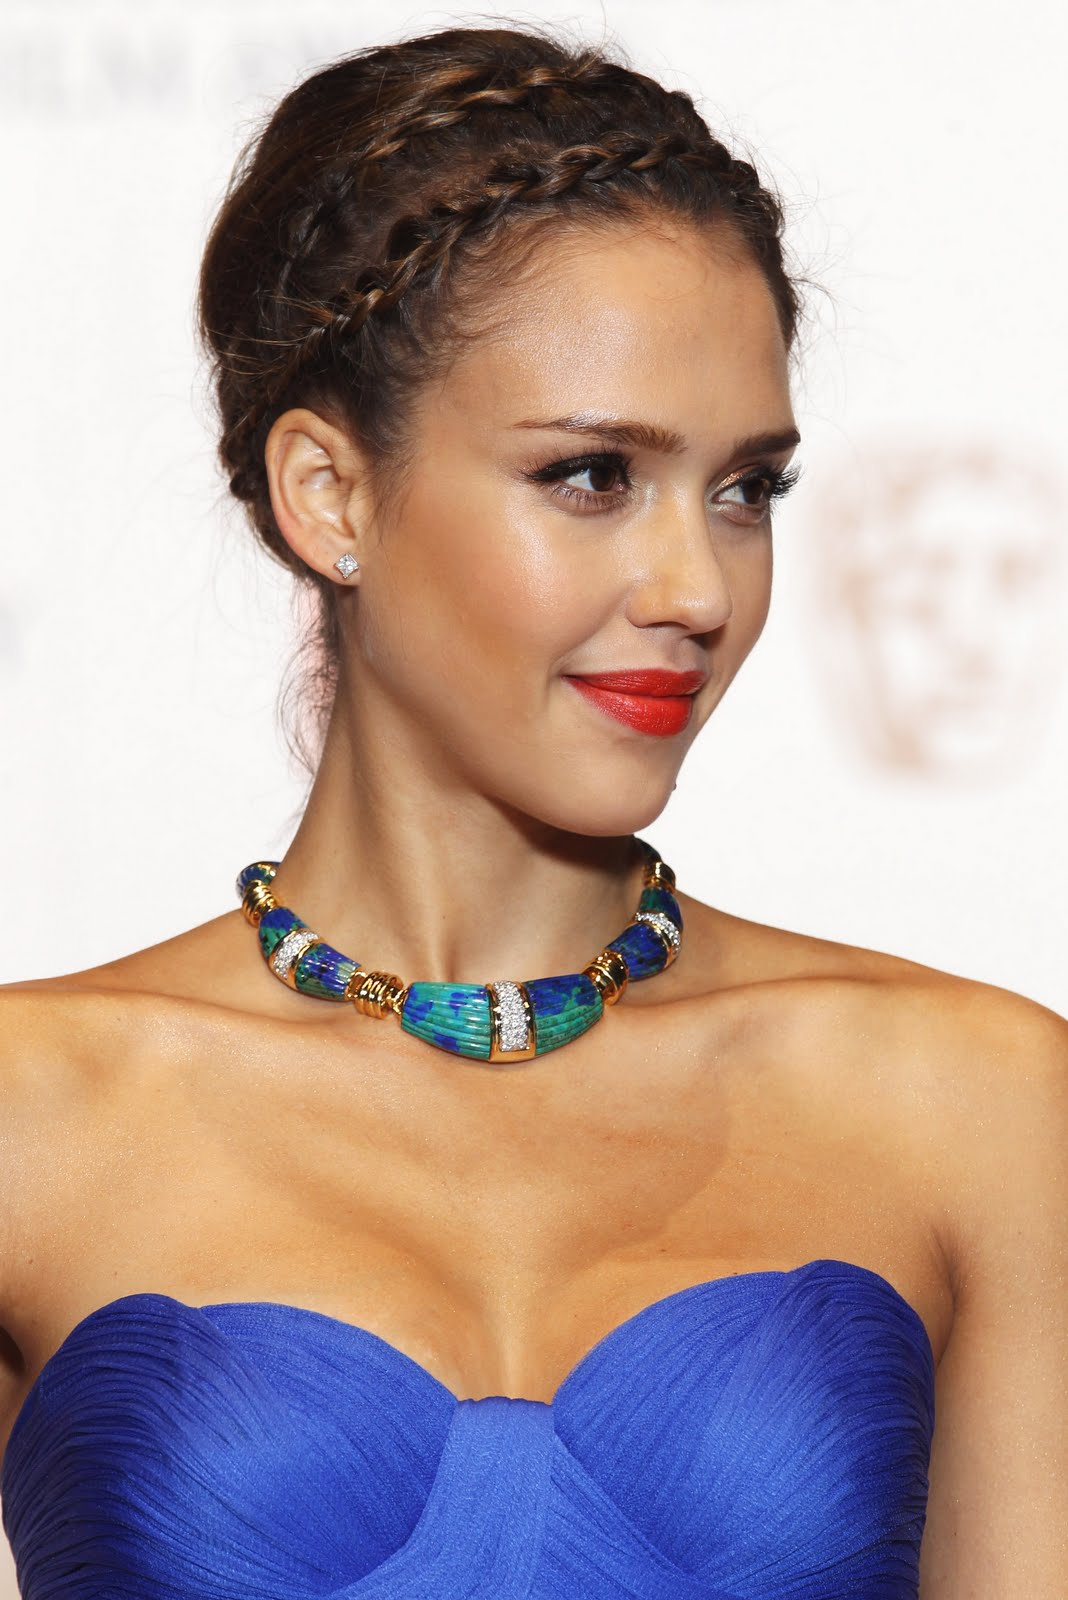 abhishe***kism: Jessica Alba unseen hot pictures